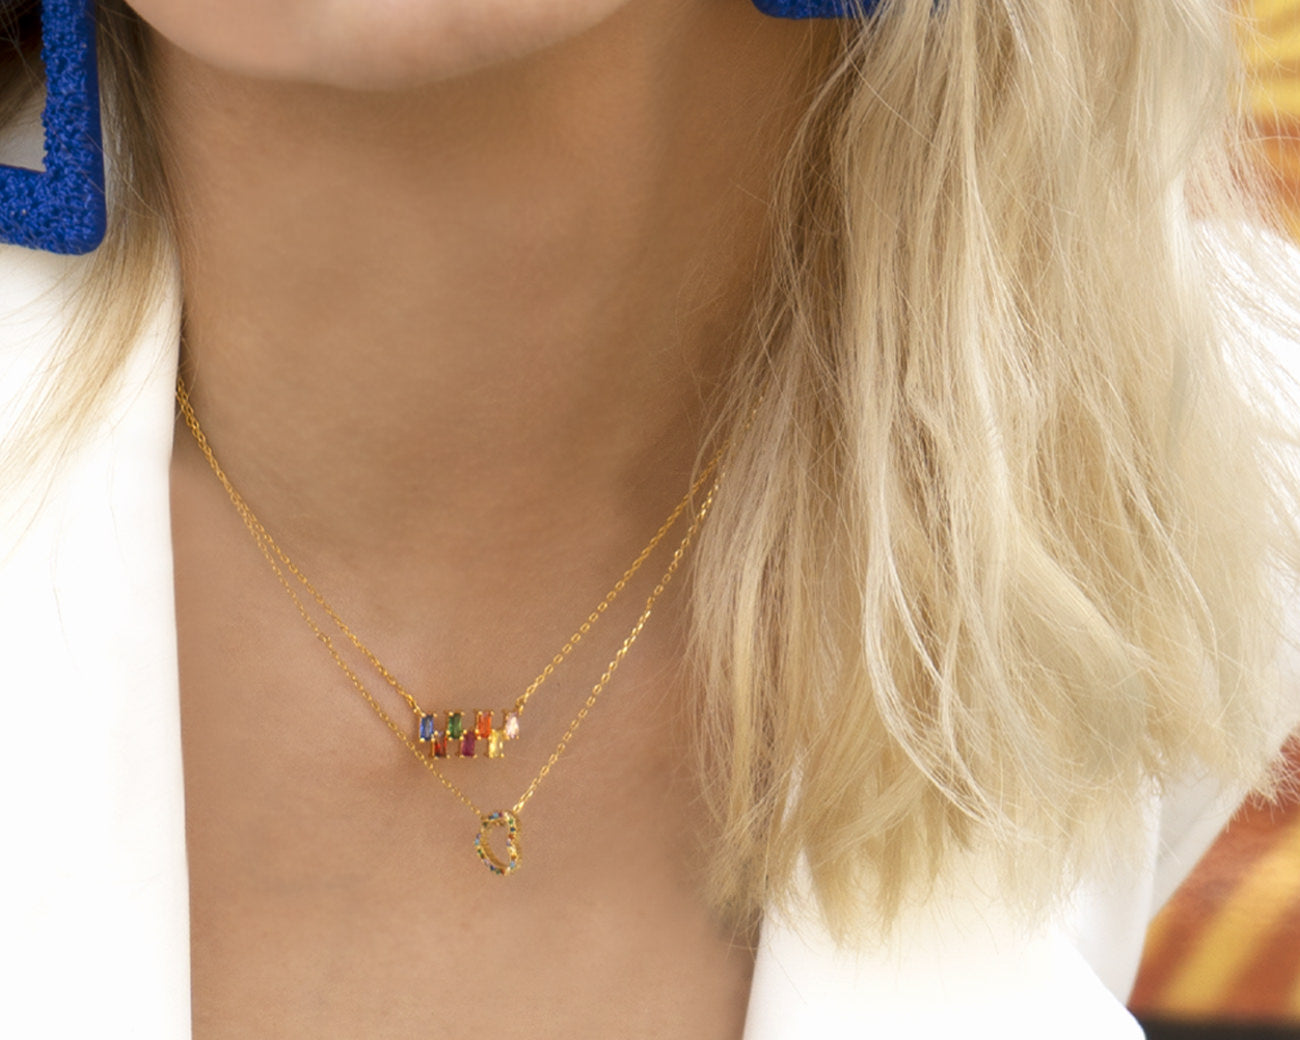 FAX Jewelry | 'Lucky Number 7' Rainbow Gold Necklace | Model